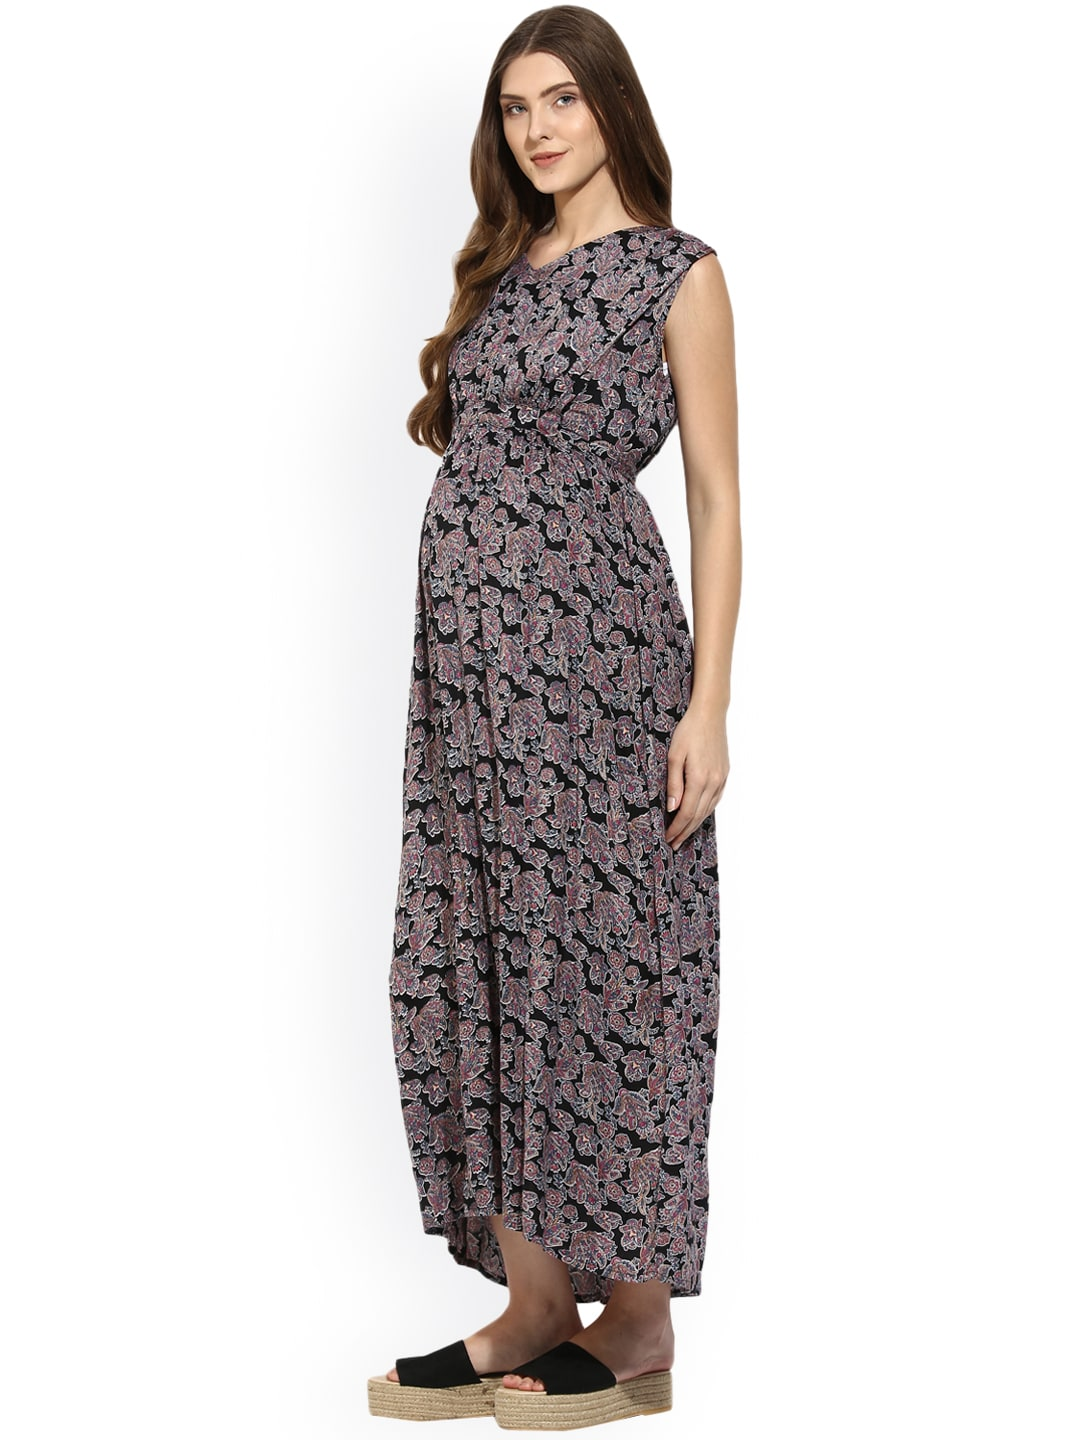 Maternity dresses buy pregnancy dresses online myntra ombrellifo Images